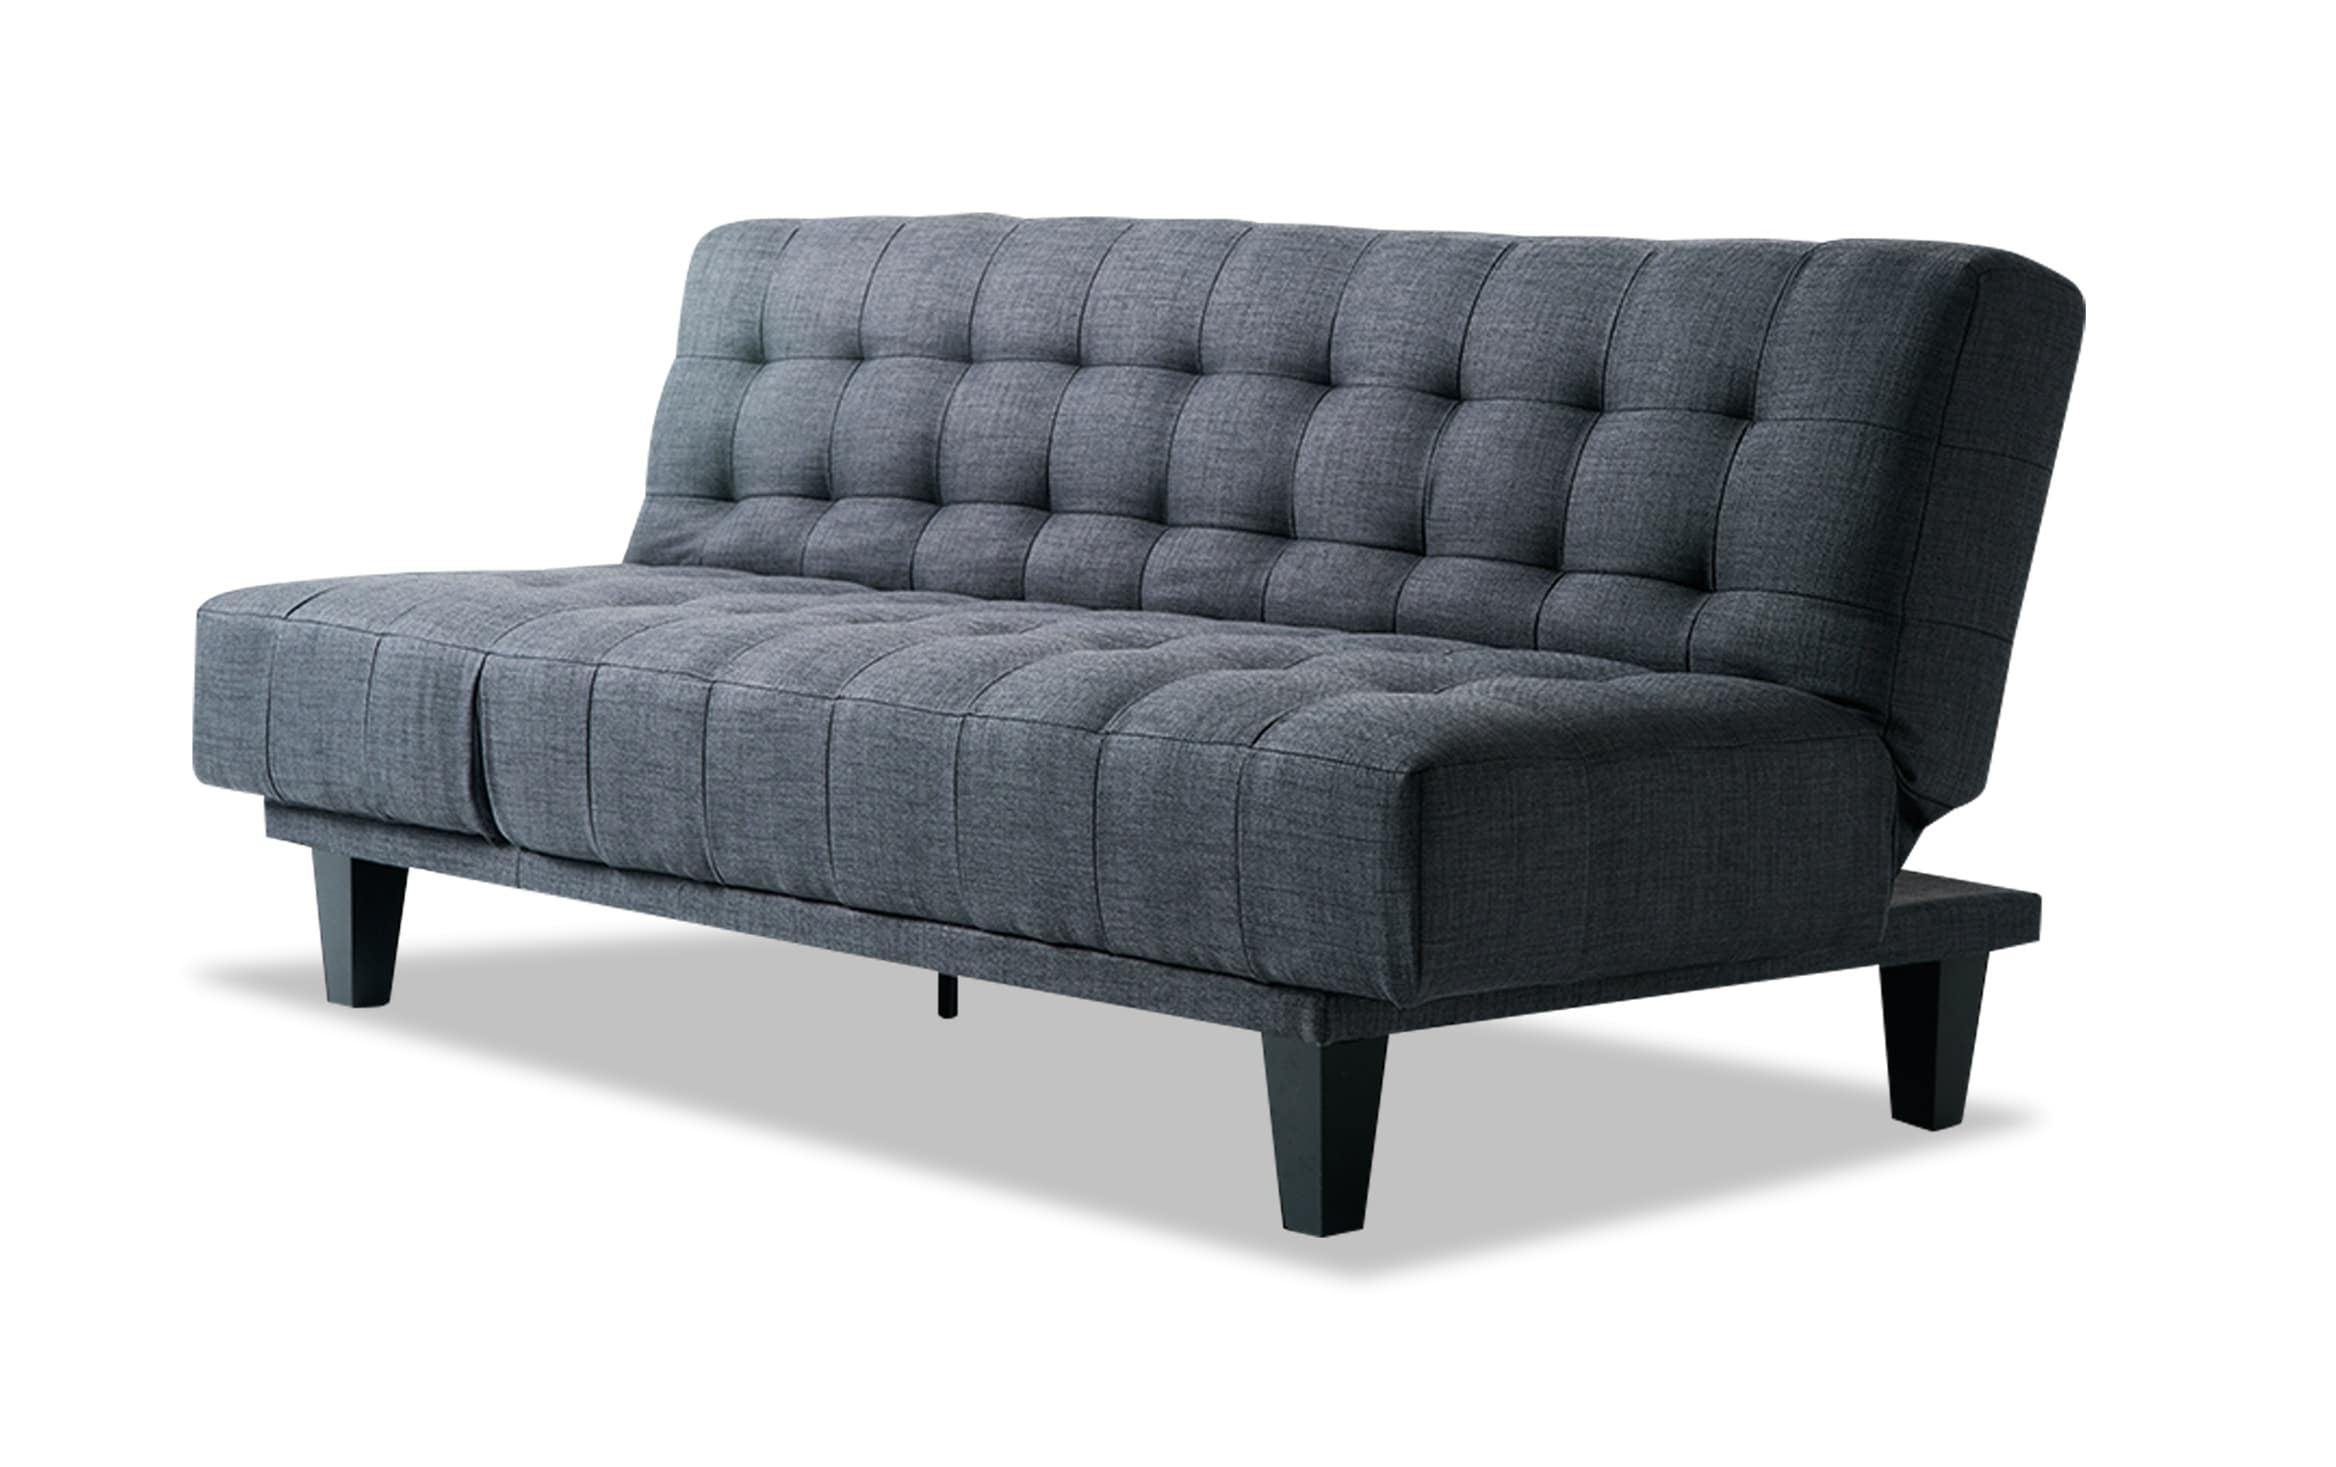 Bobs Furniture Futon Bed Intended For Well Known Antonio Light Gray Leather Sofas (View 9 of 15)